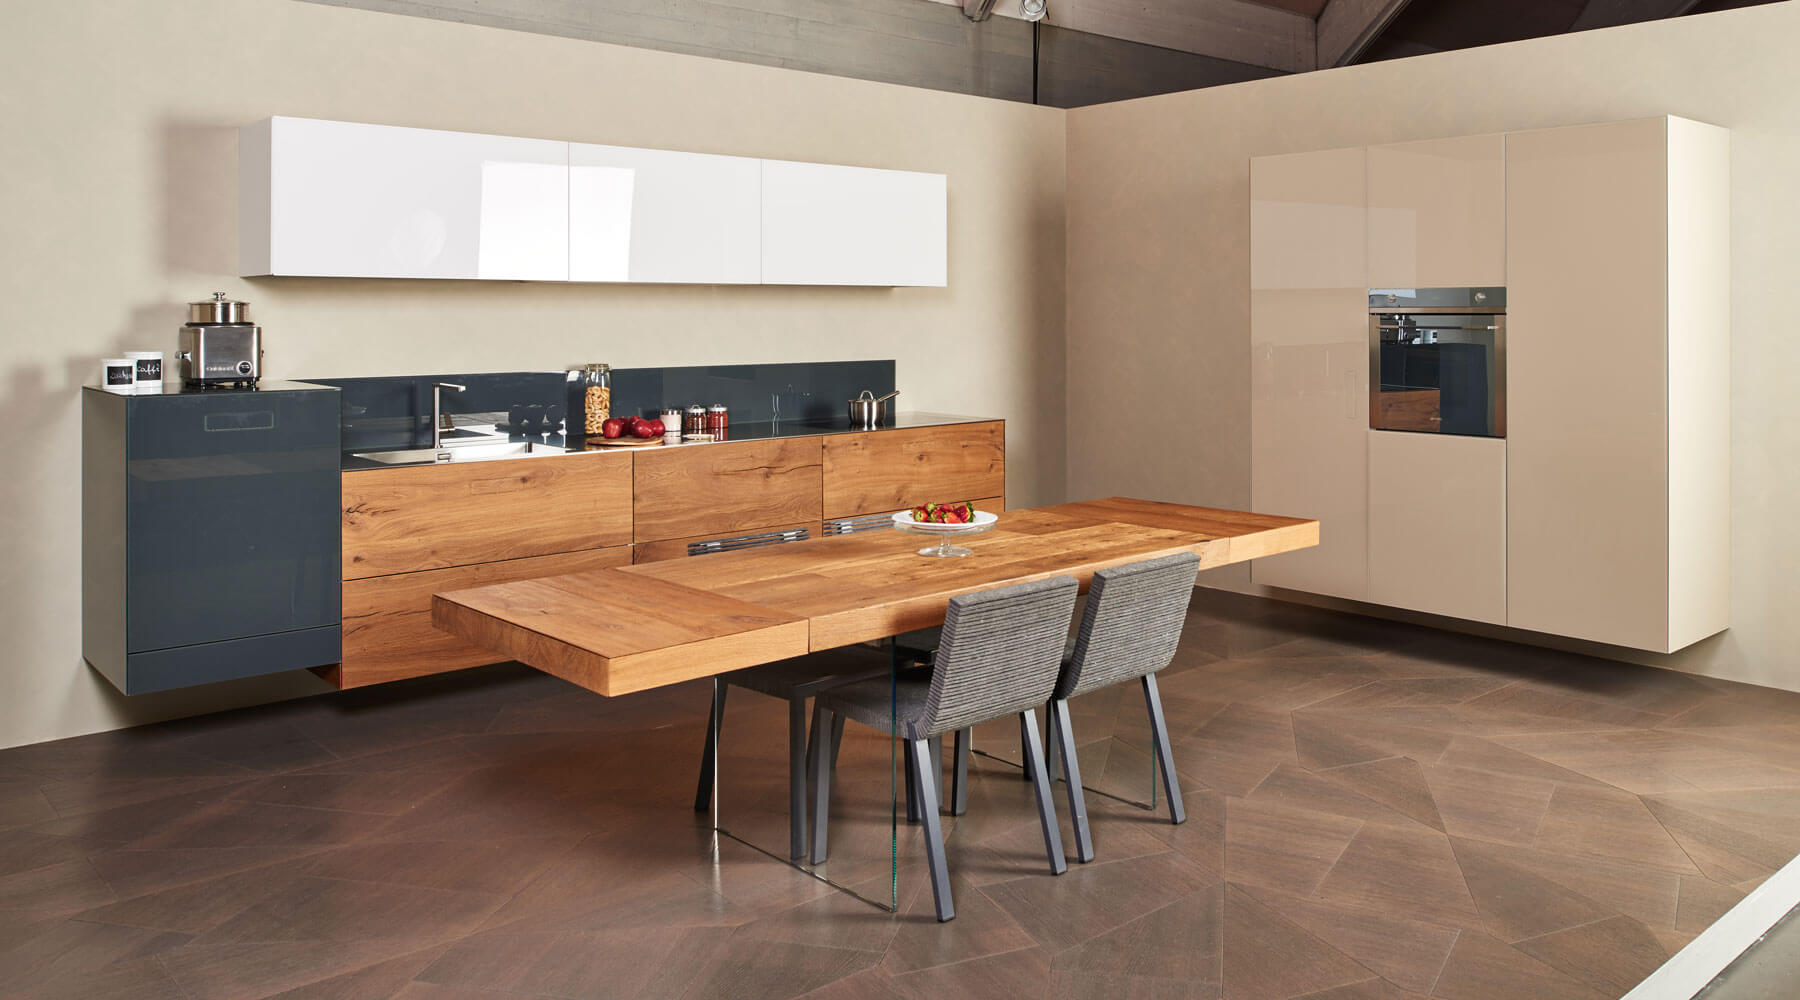 Awesome Schiffini Cucine Prezzi Ideas - Skilifts.us - skilifts.us